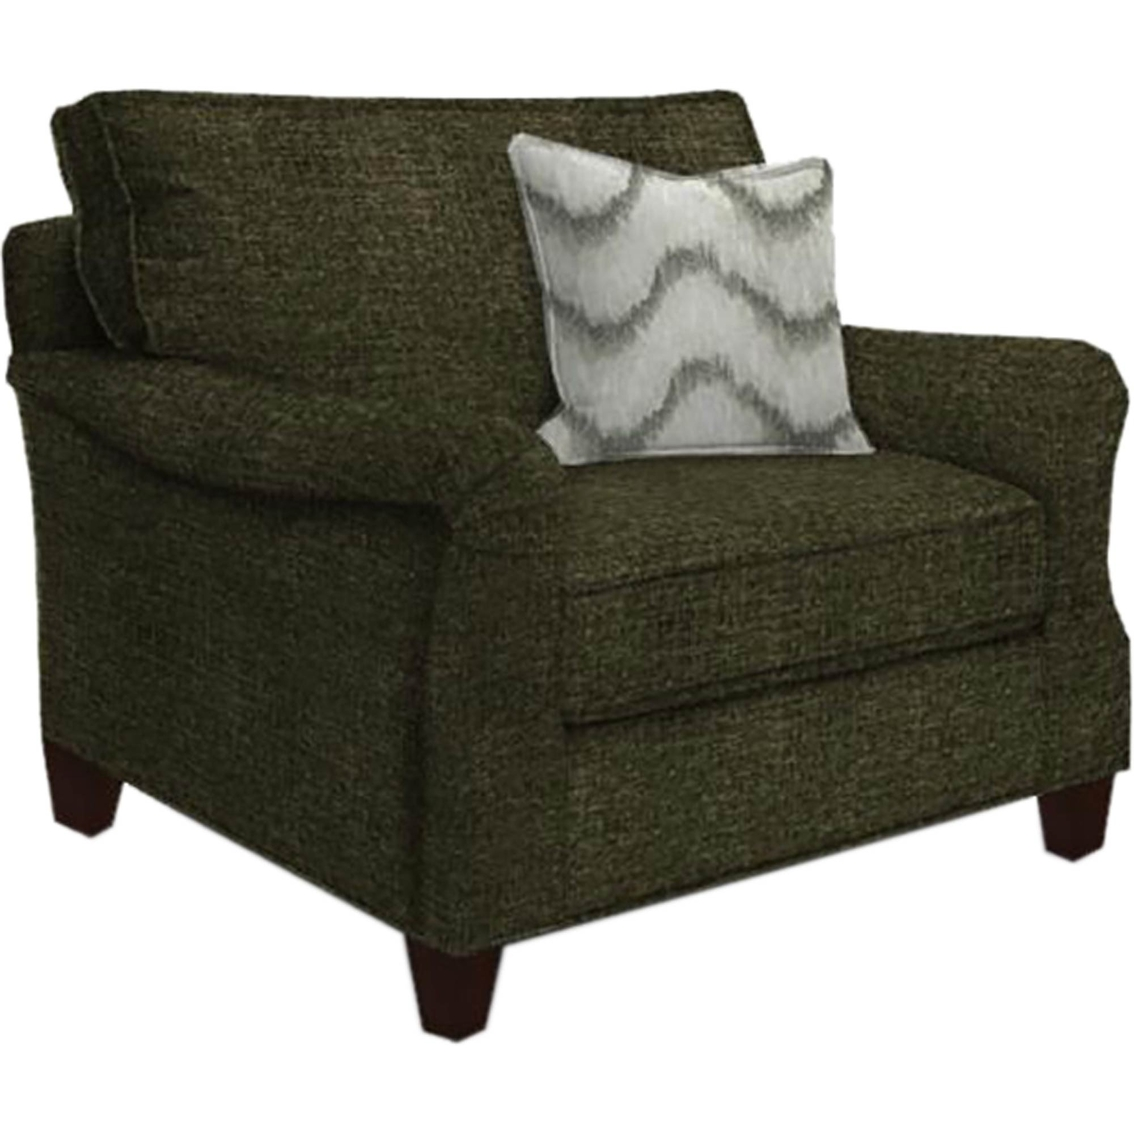 Hgtv Home Design Studio By Bassett Charles Of London Arm Chair And A